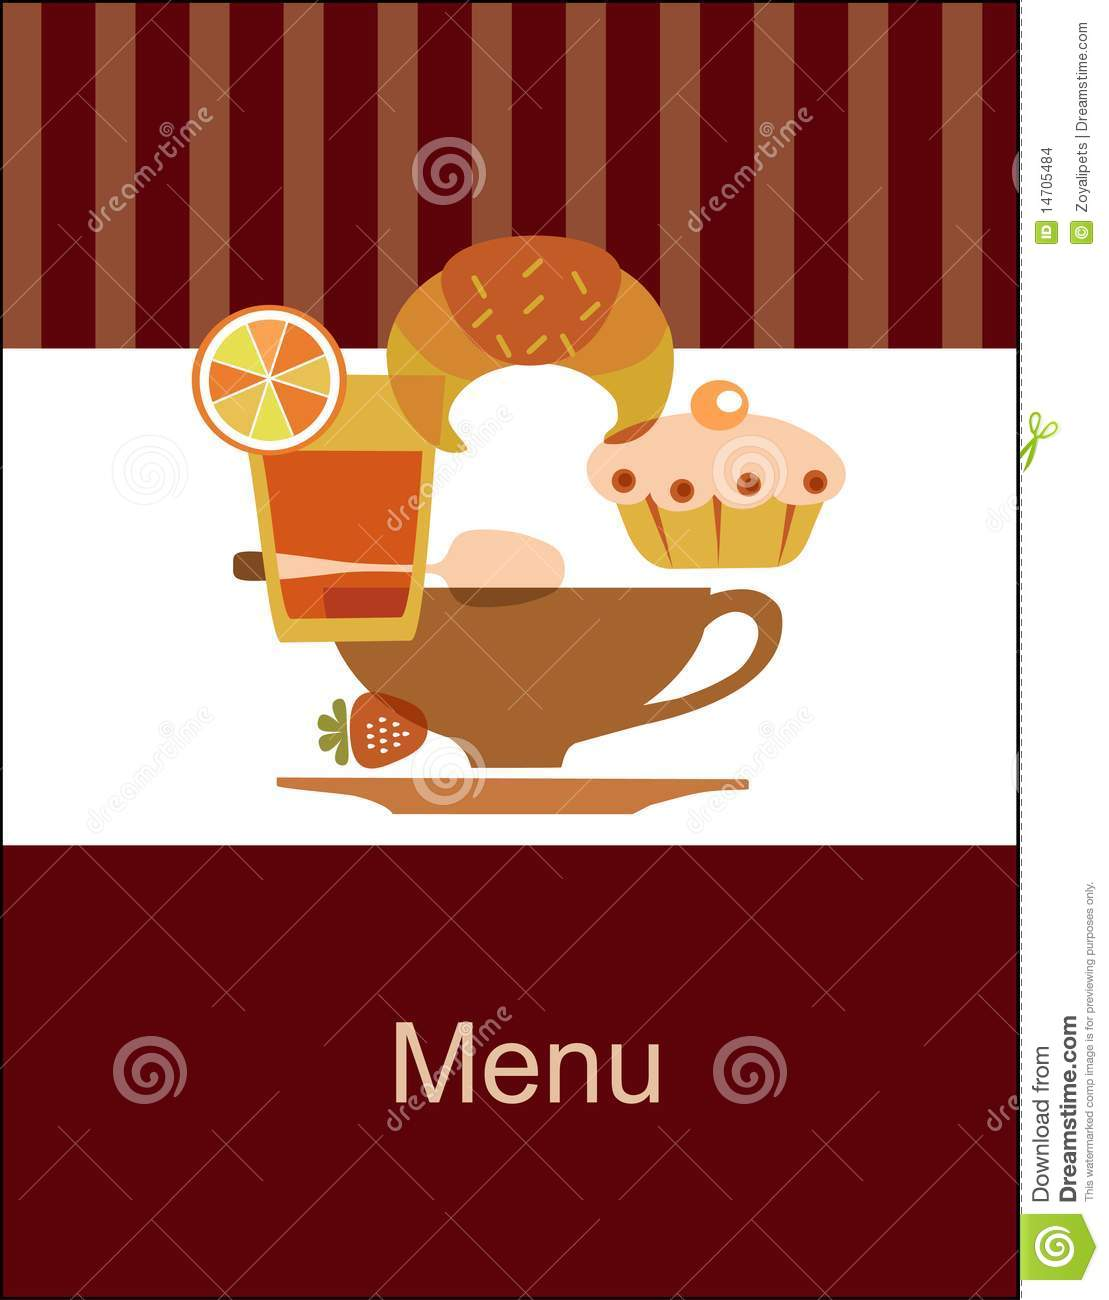 http://thumbs.dreamstime.com/z/tasty-breakfast-menu-design-template-14705484.jpg